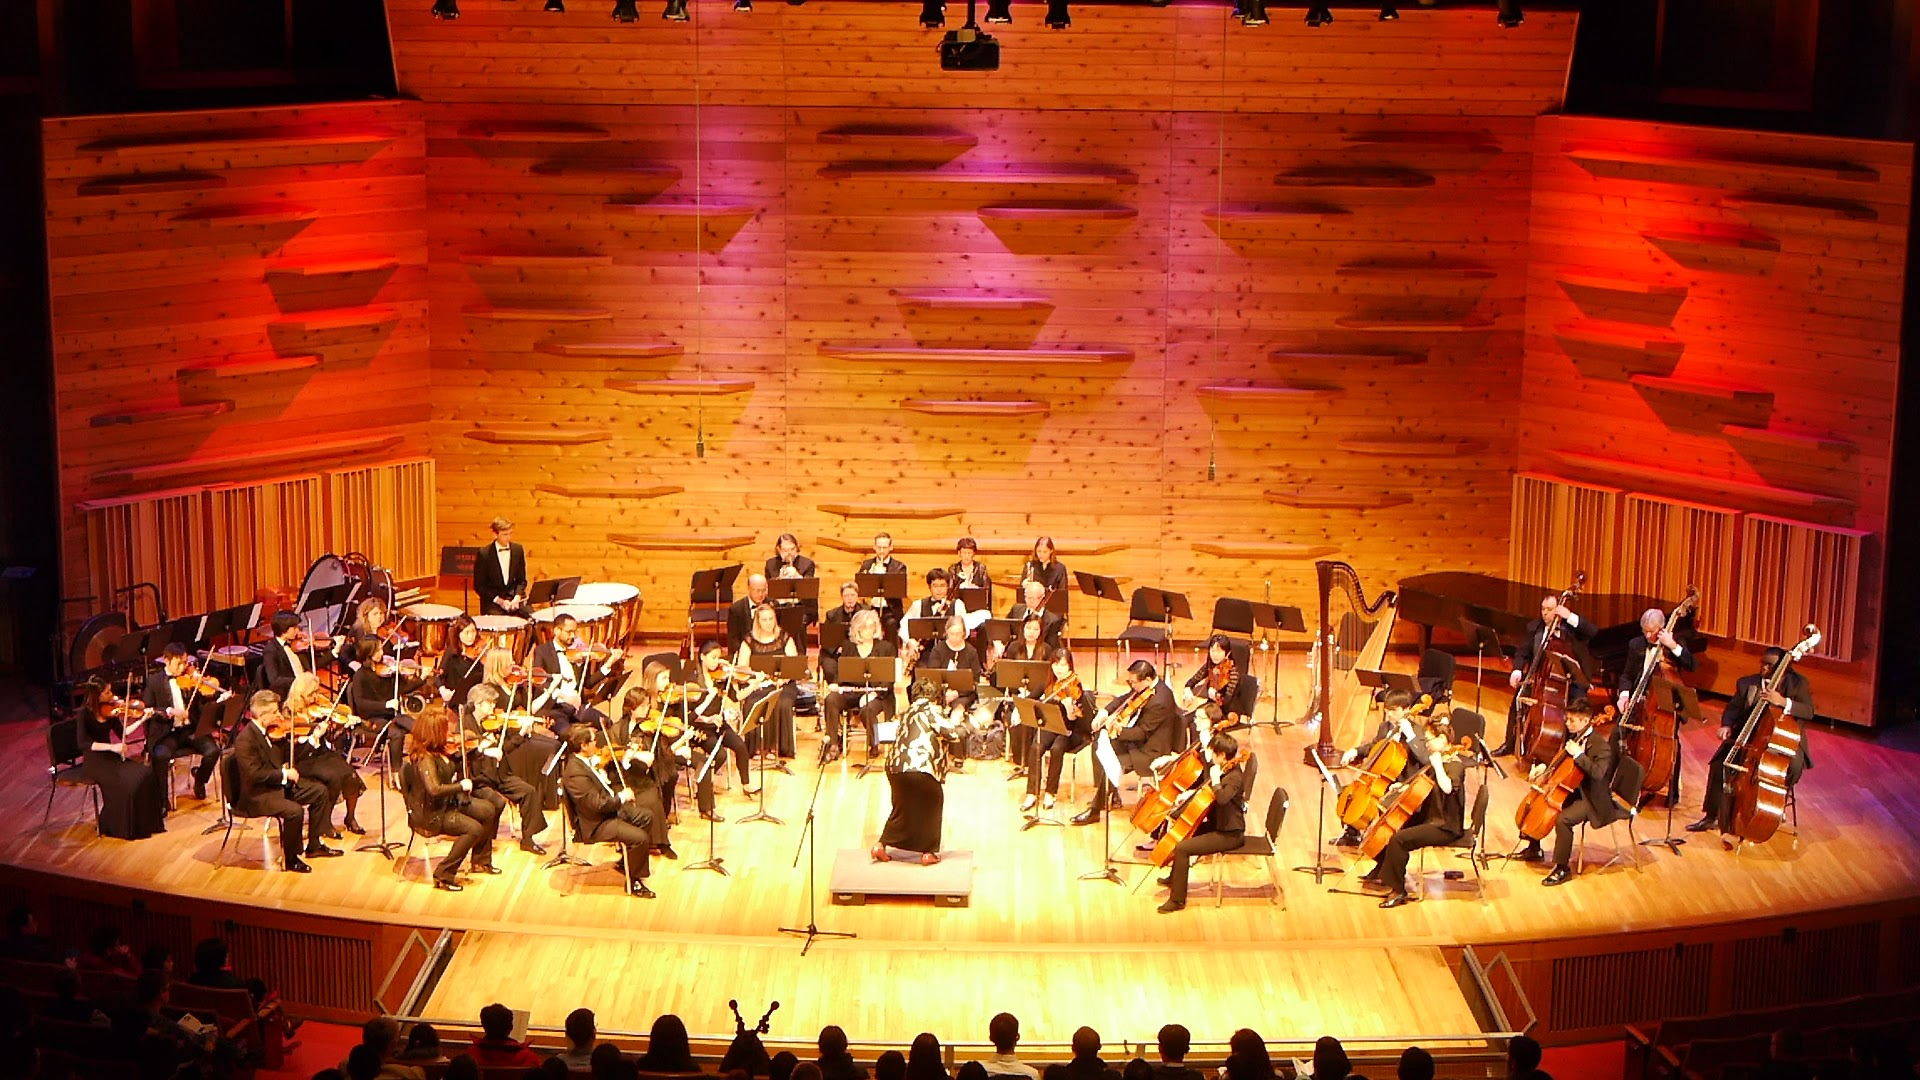 The orchestra in an inspiring and engaging performance of Mozart Symphony No. 35